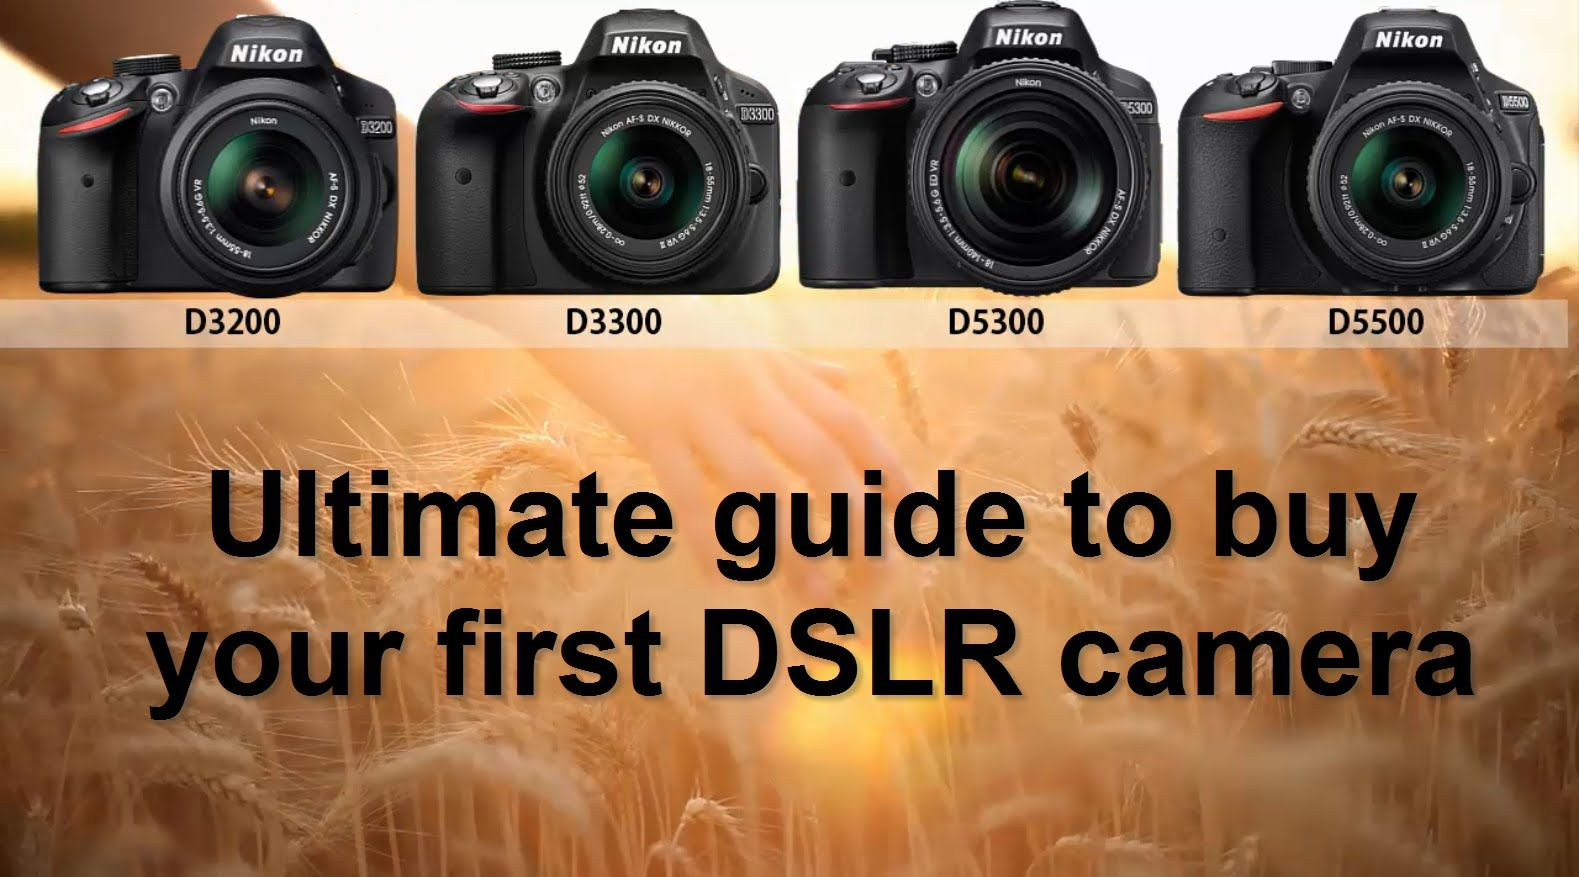 the ultimate guide for what dslr camera to buy for beginners rh pinterest com SLR Cameras On Sale SLR Cameras On Sale